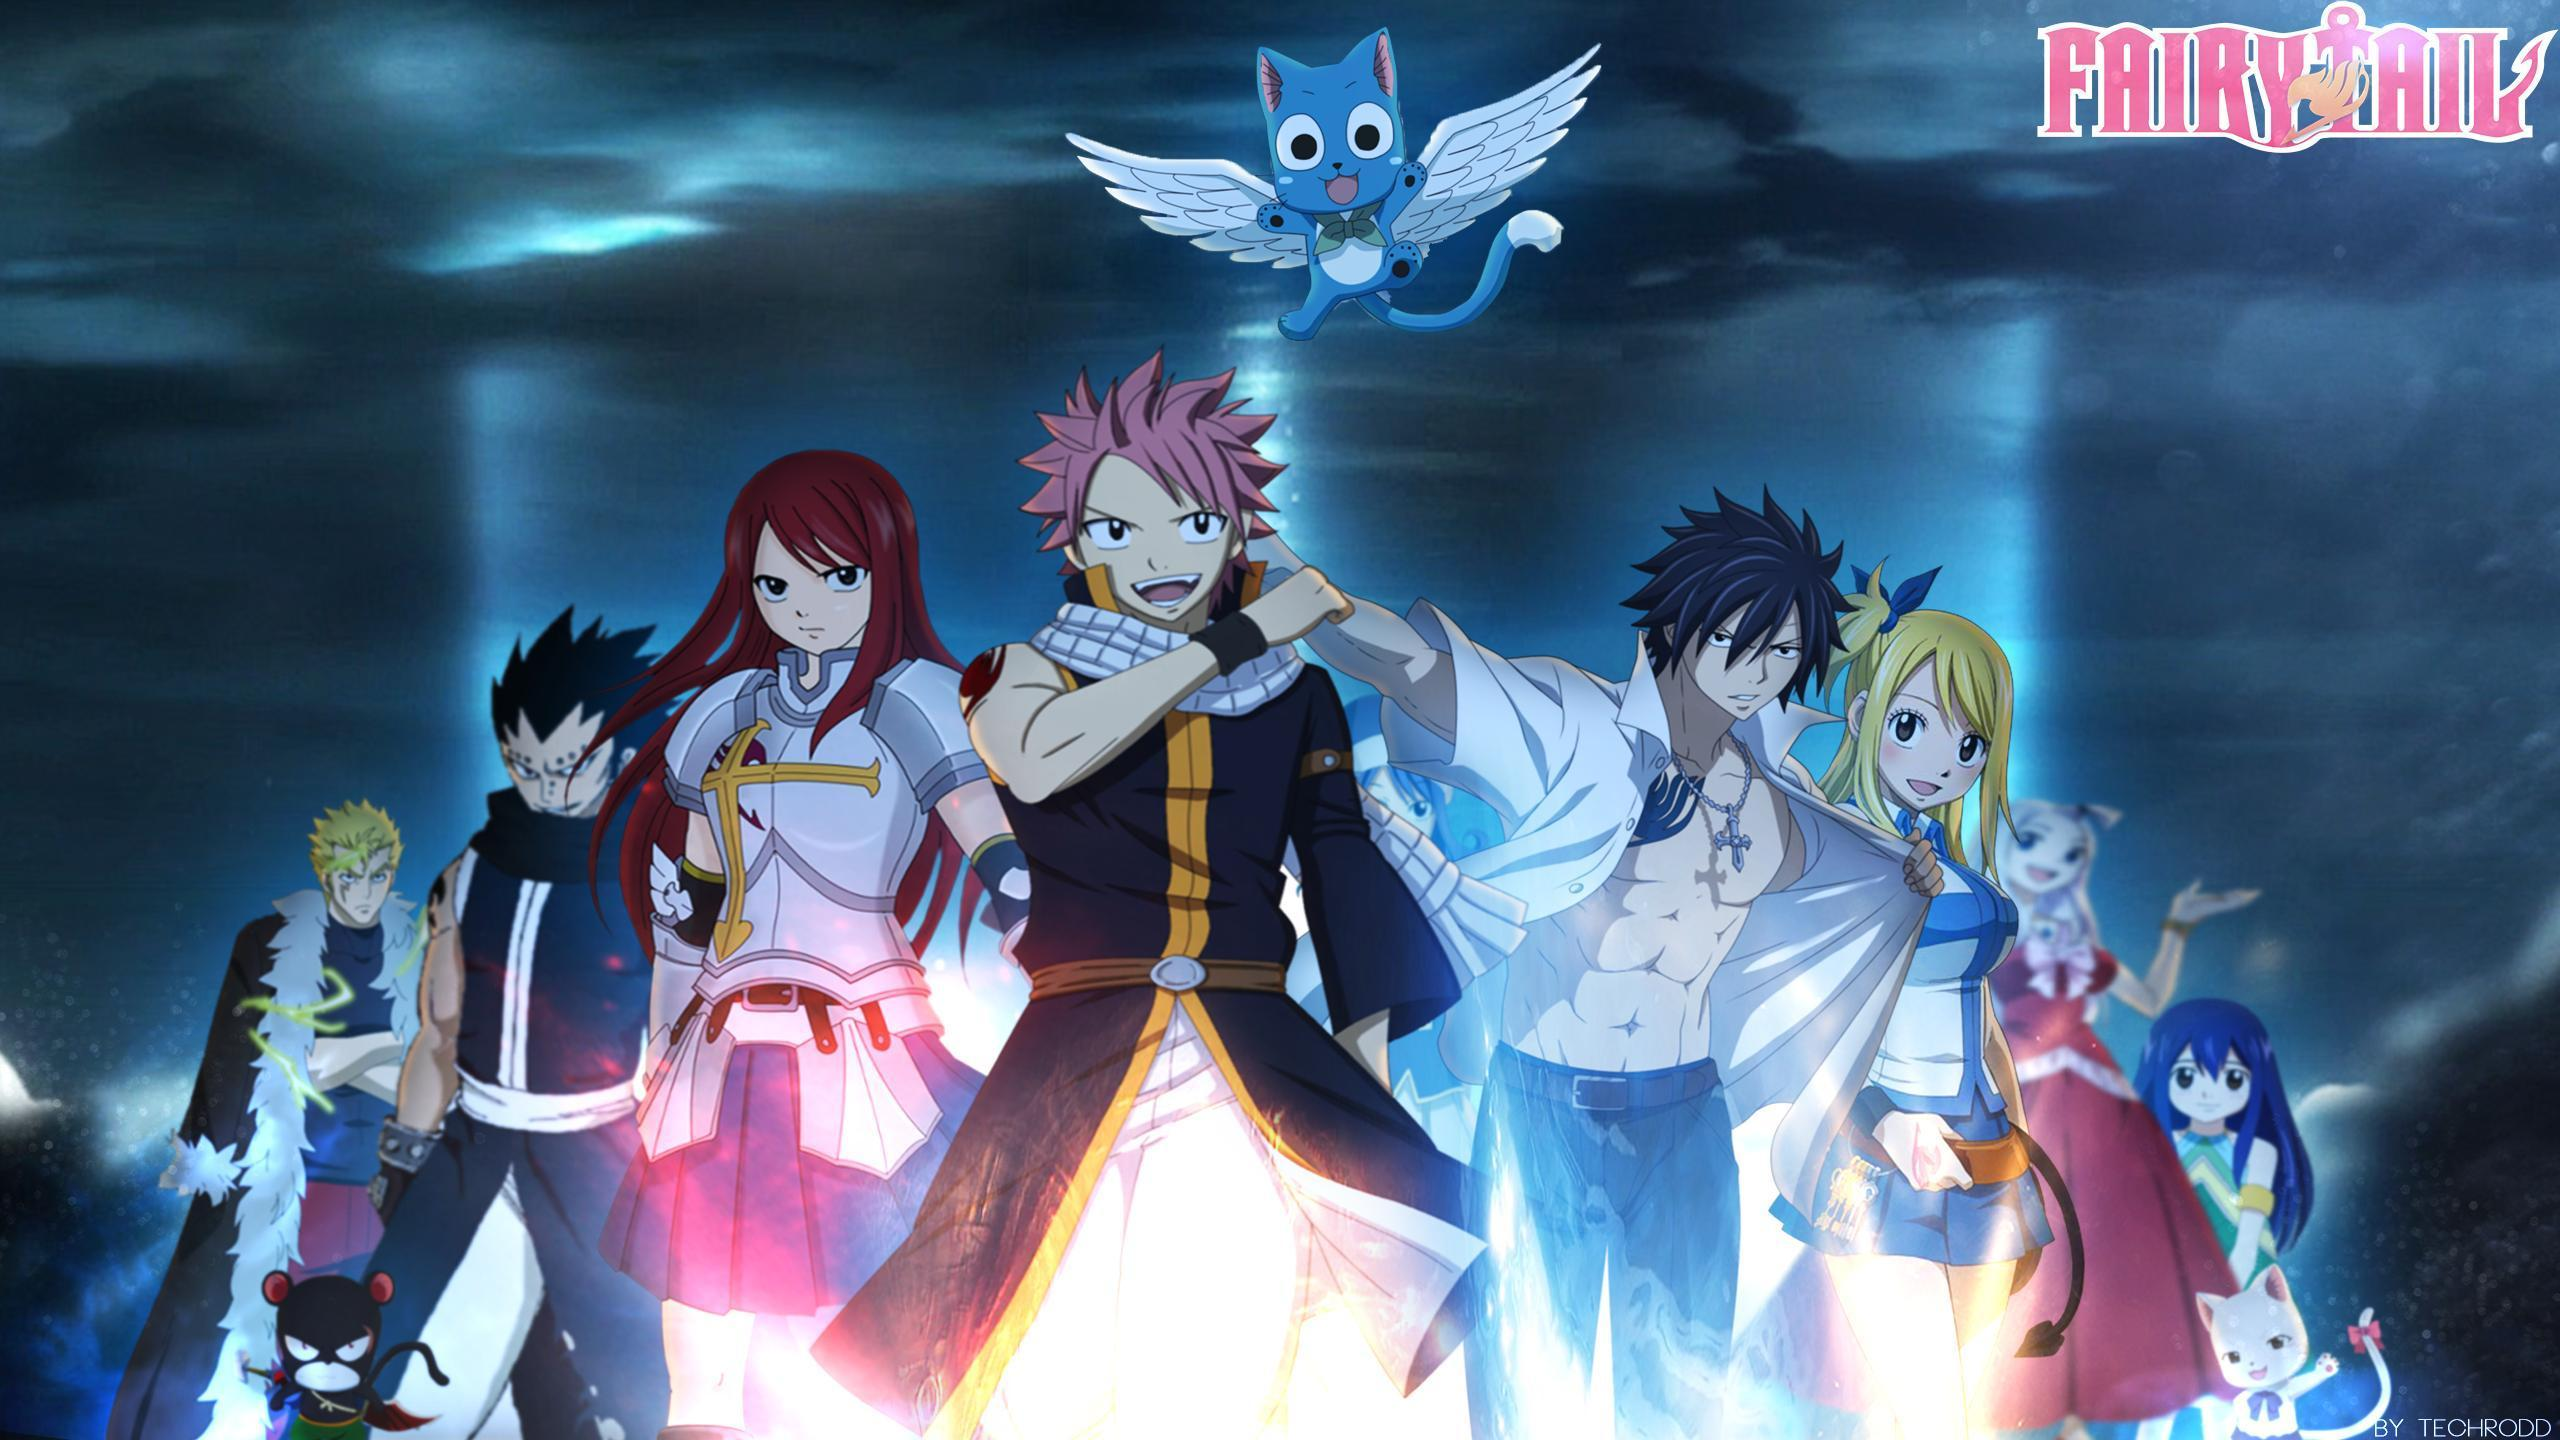 Fairy Tail Wallpapers 2560x1440